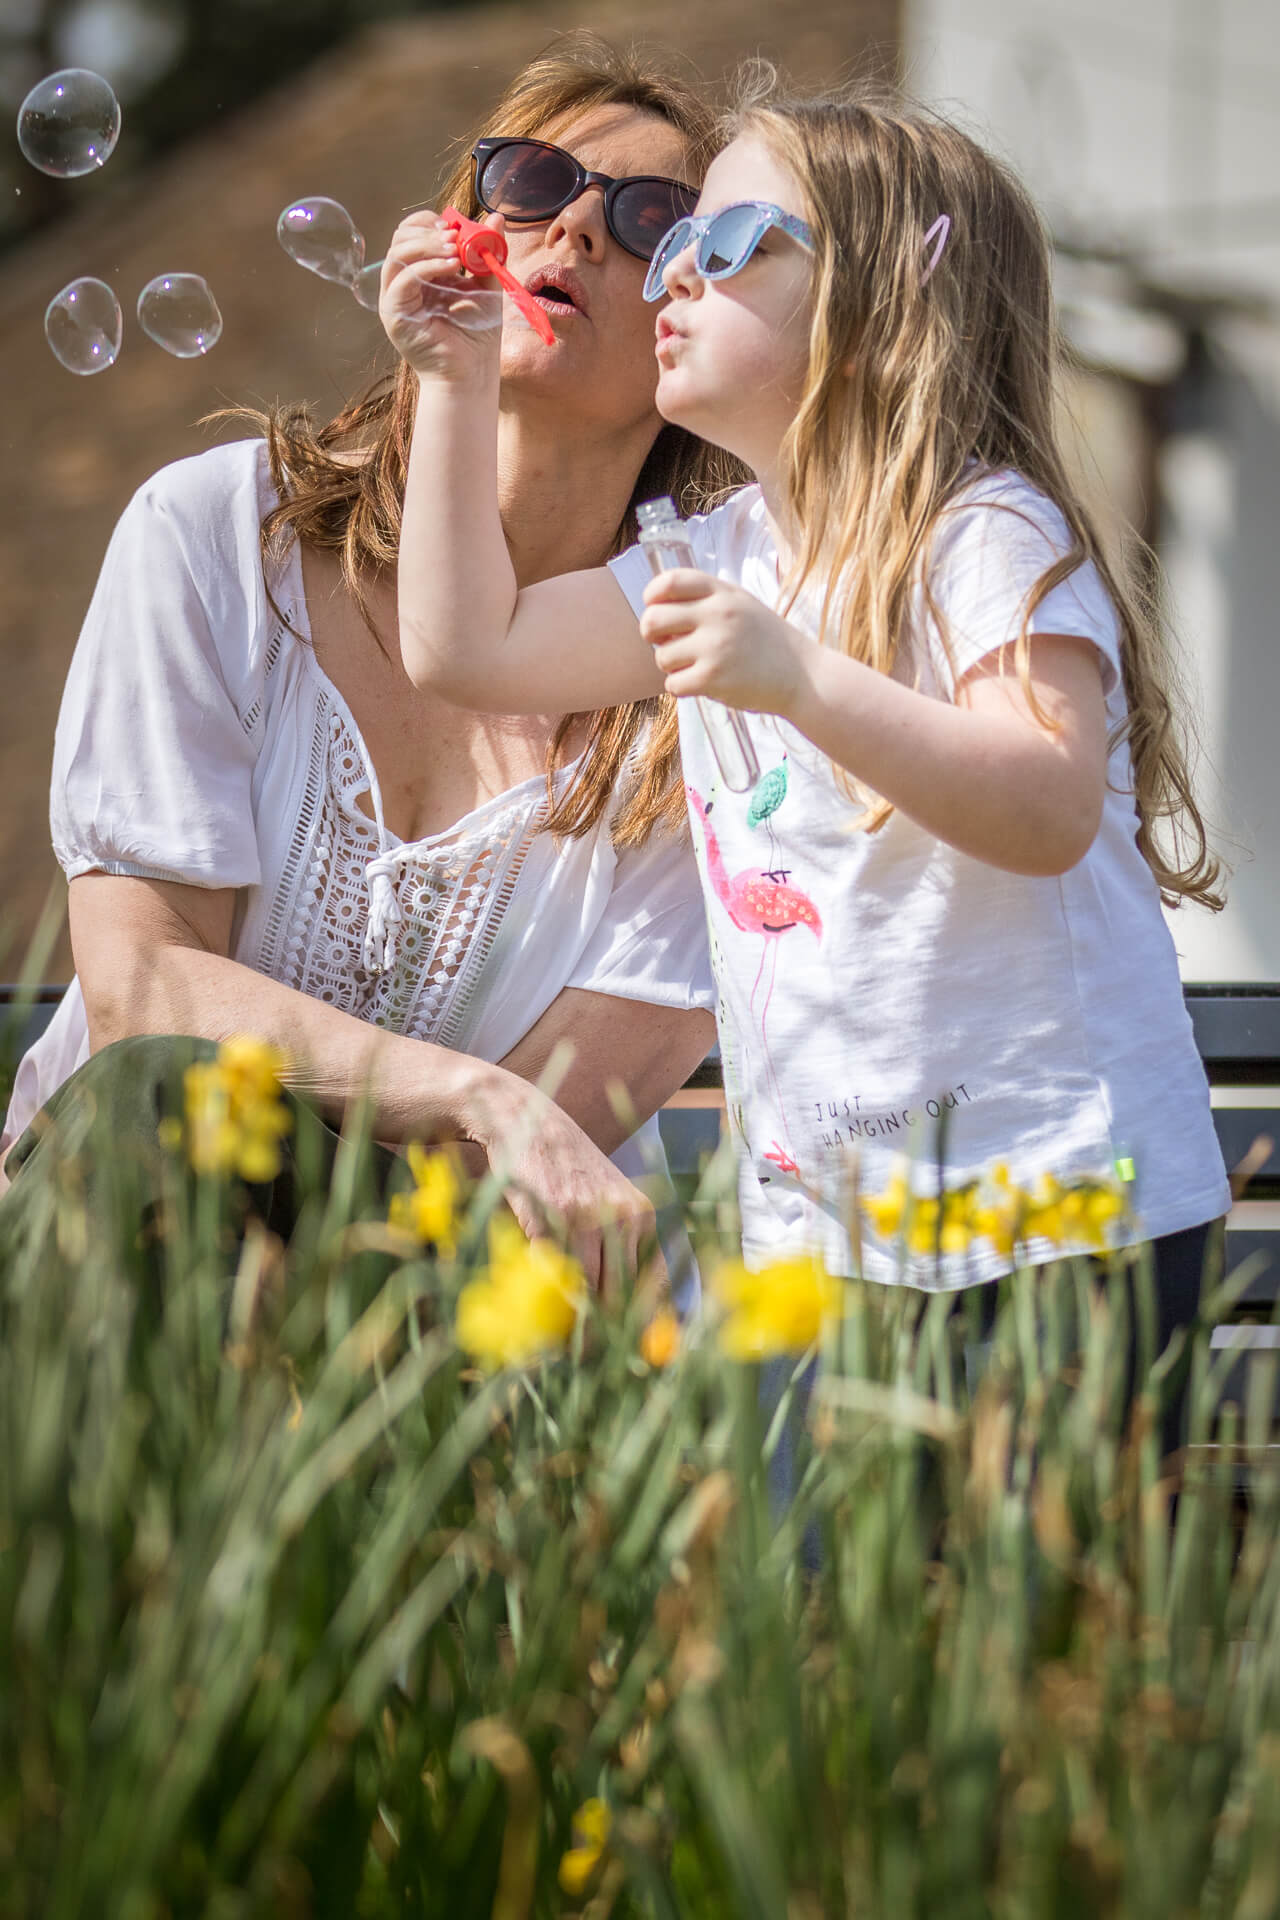 A colour view of Sara along with her friends daughter taken (in the sun) as they blow bubbles with a blower & a test tube. Sara kneels by the little one's side, both wear sunglasses.